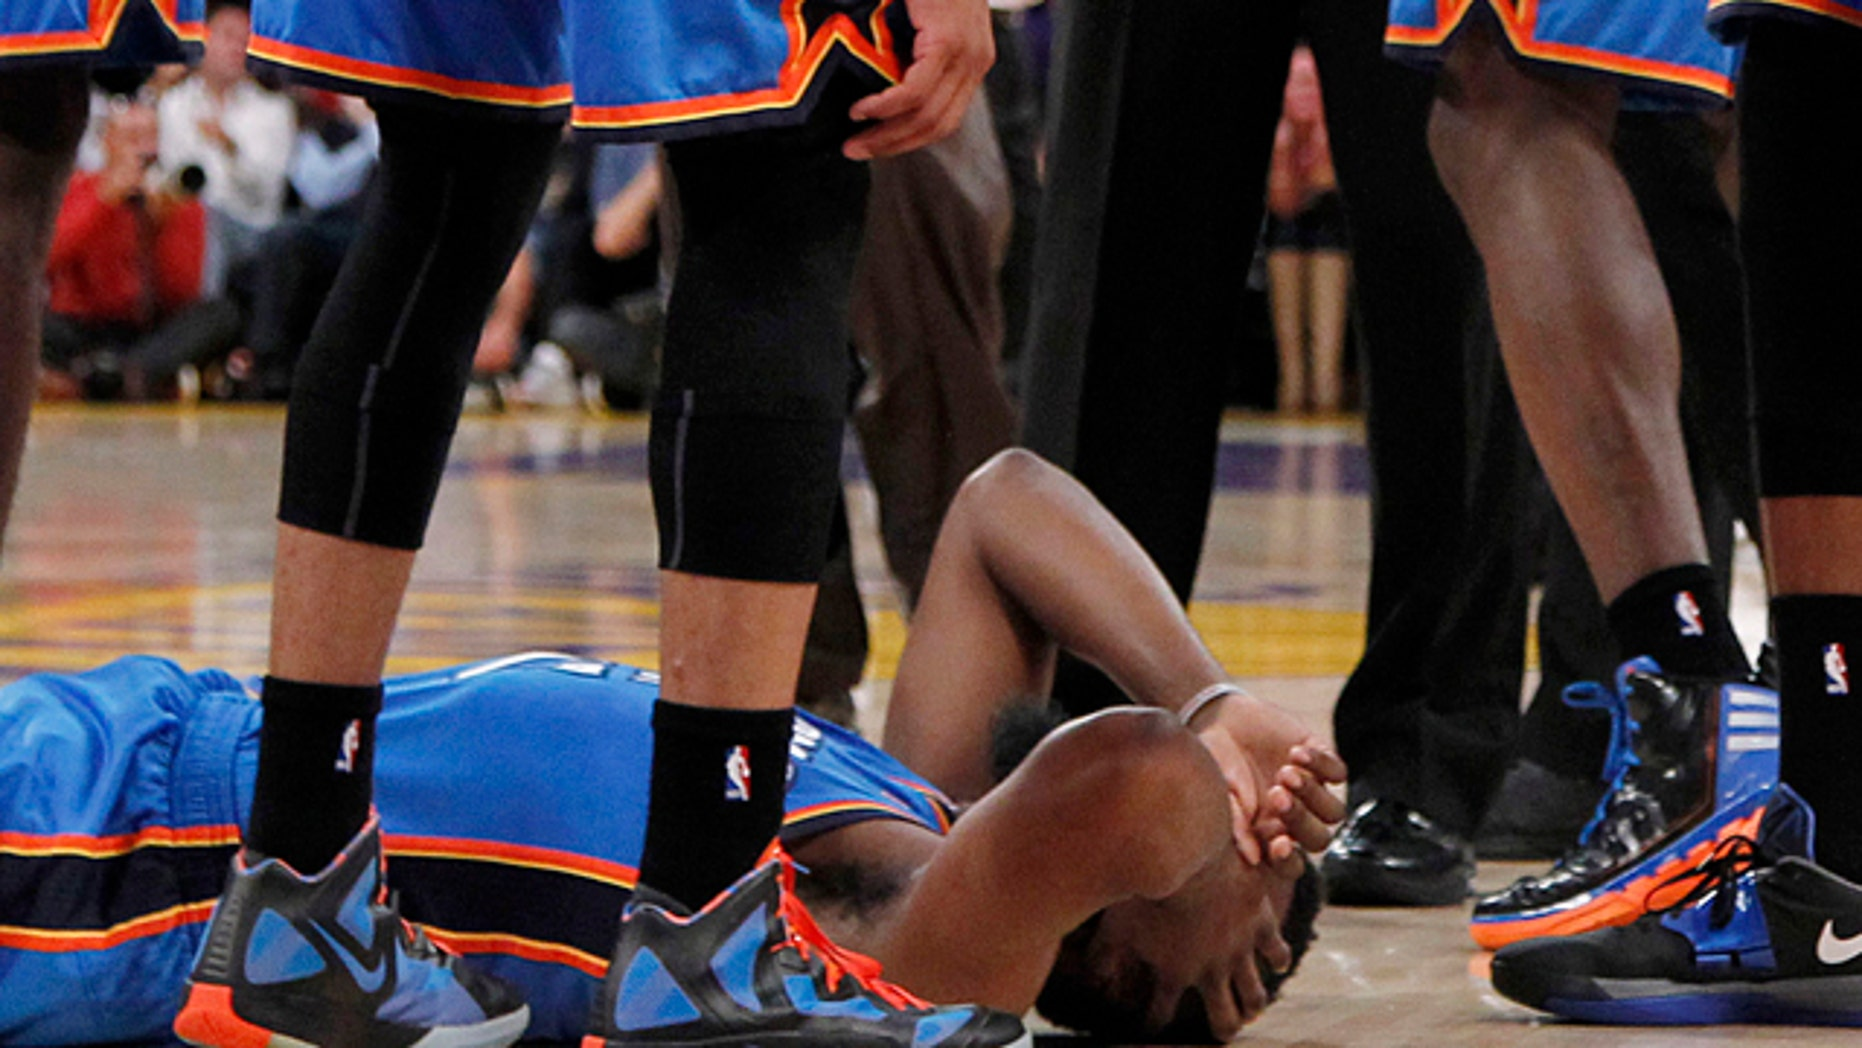 April 22, 2012: Oklahoma City Thunder players stand over teammate James Harden, lower left, after receiving a flagrant double foul from Los Angeles Lakers' Metta World Peace, who was then ejected, in the first half of an NBA basketball game in Los Angeles. (AP)